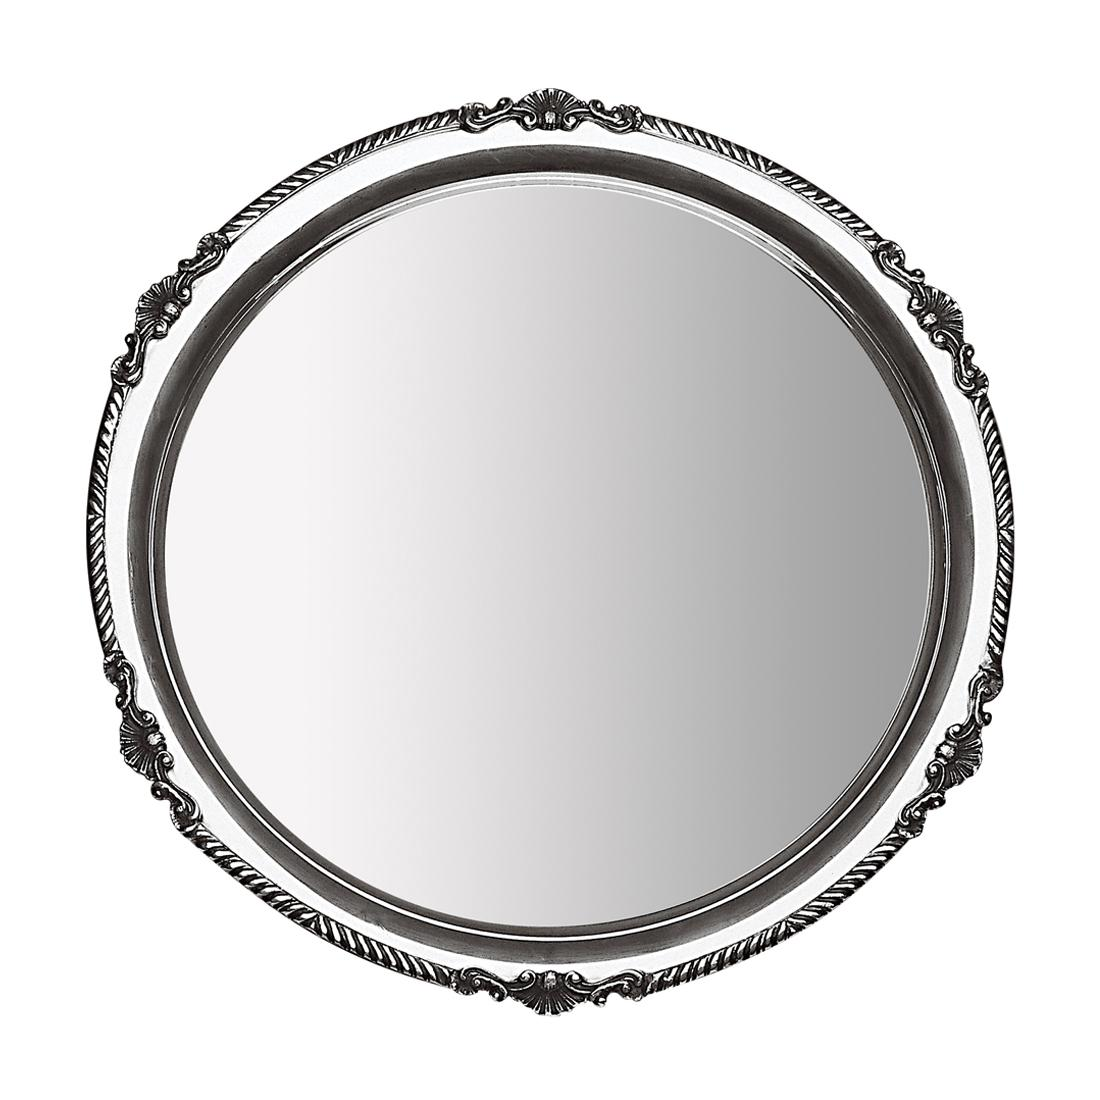 orfevra_silver_plated_round_tray_in_royal